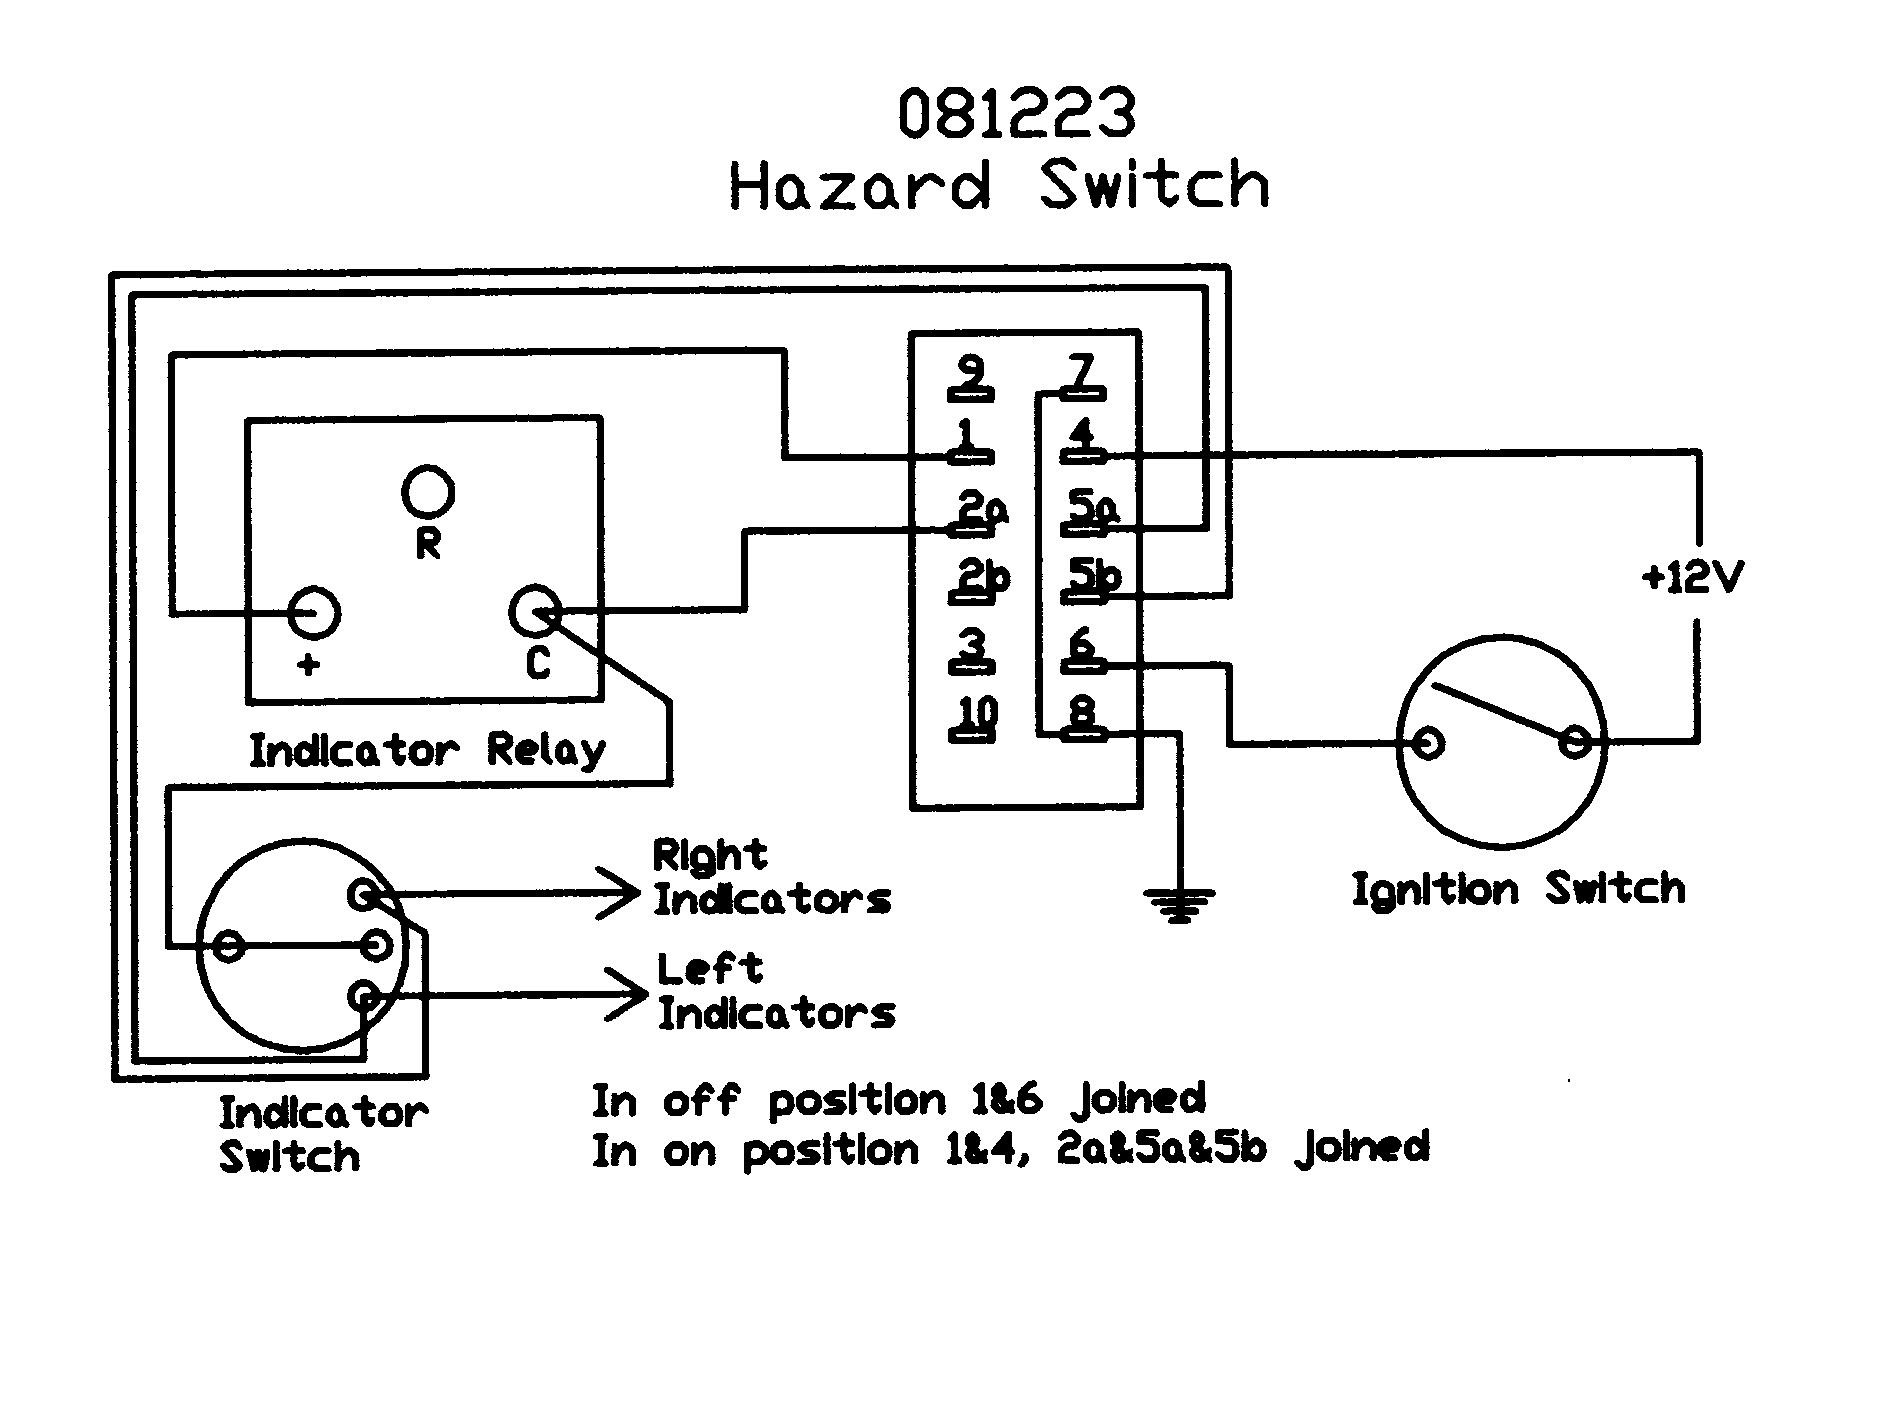 hight resolution of  rotary switch wiring diagram 1904x1424 rocker hazard switch light